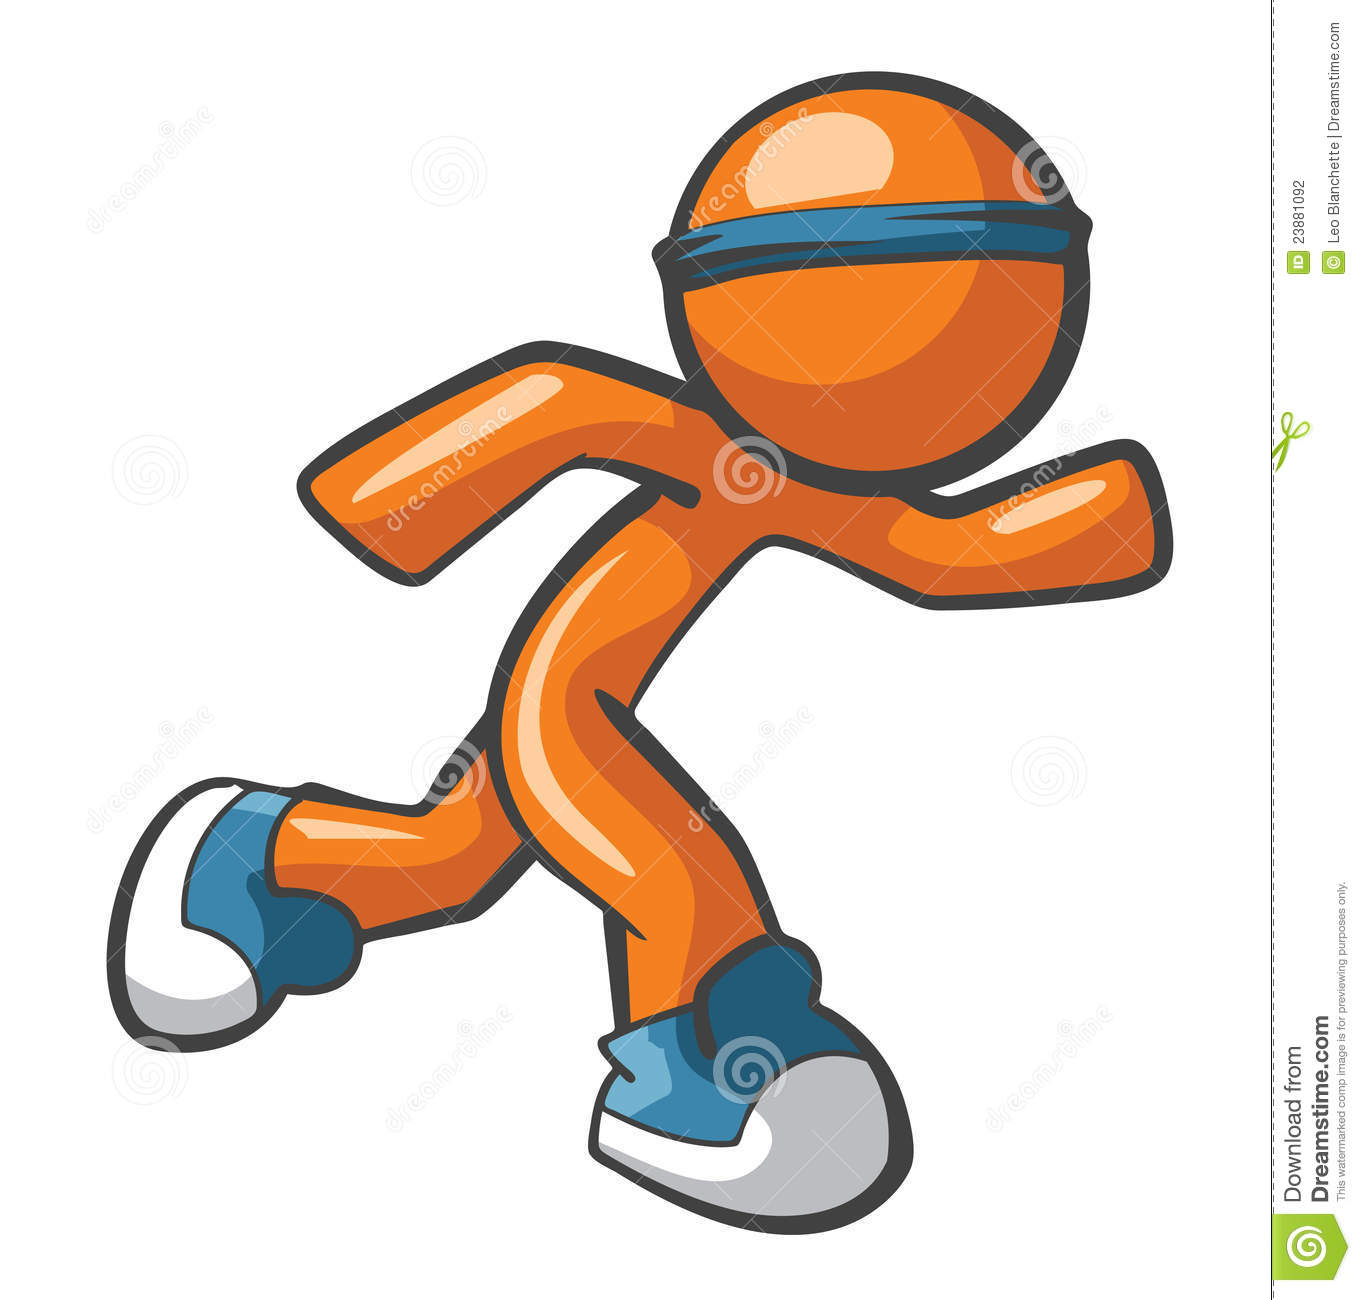 Kids running shoes clipart